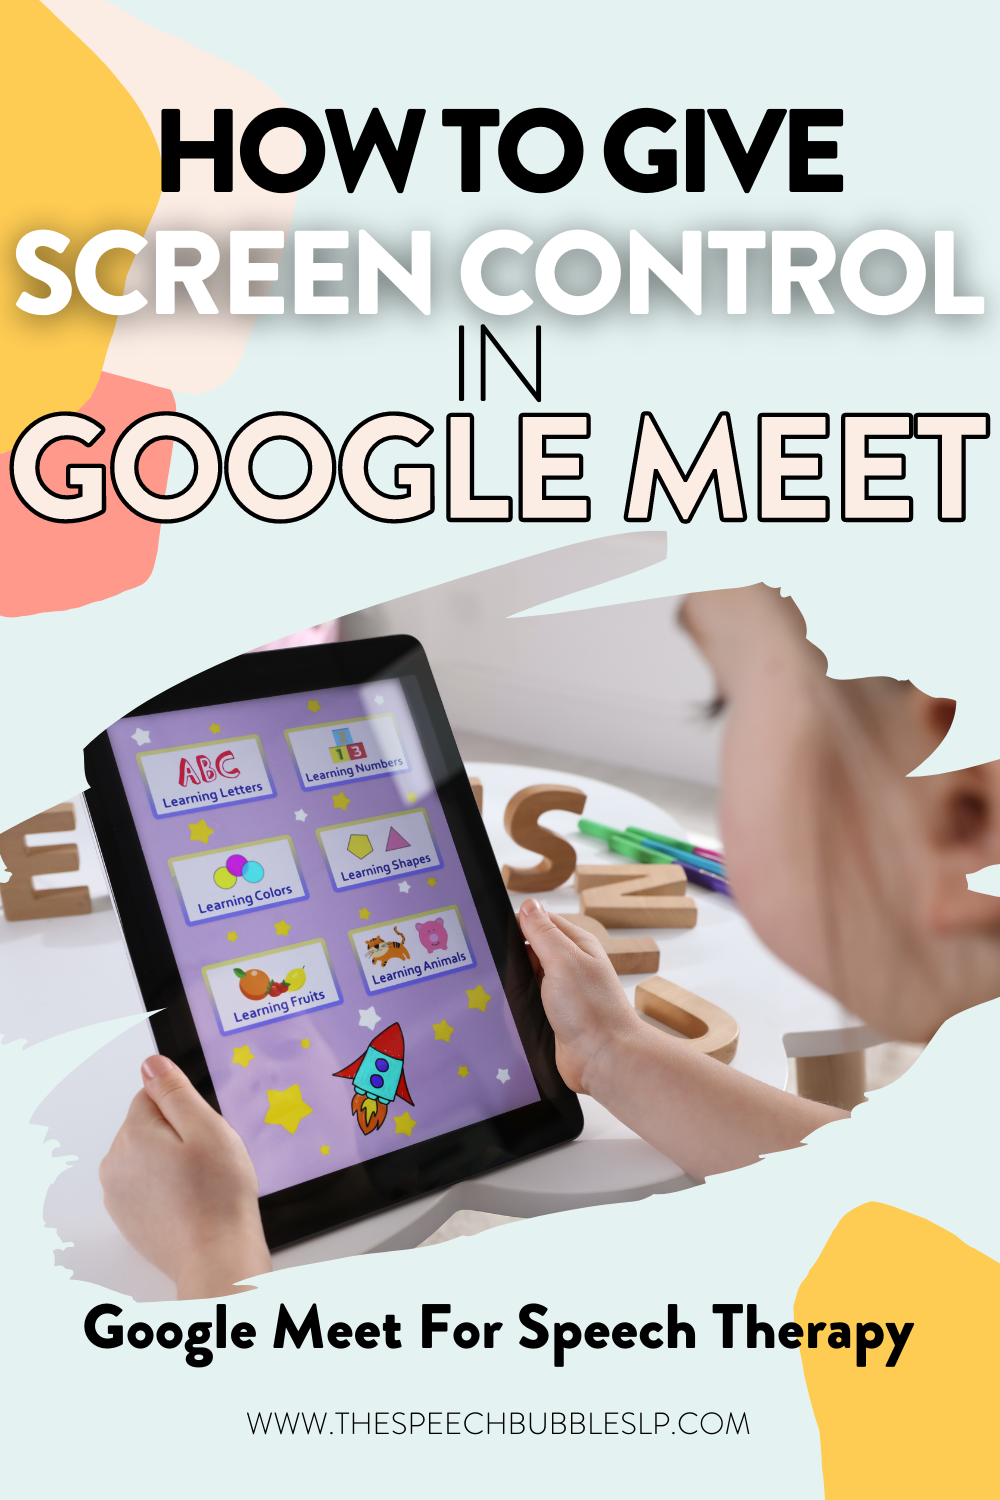 how to give screen control in Google meet for speech therapy and teletherapy